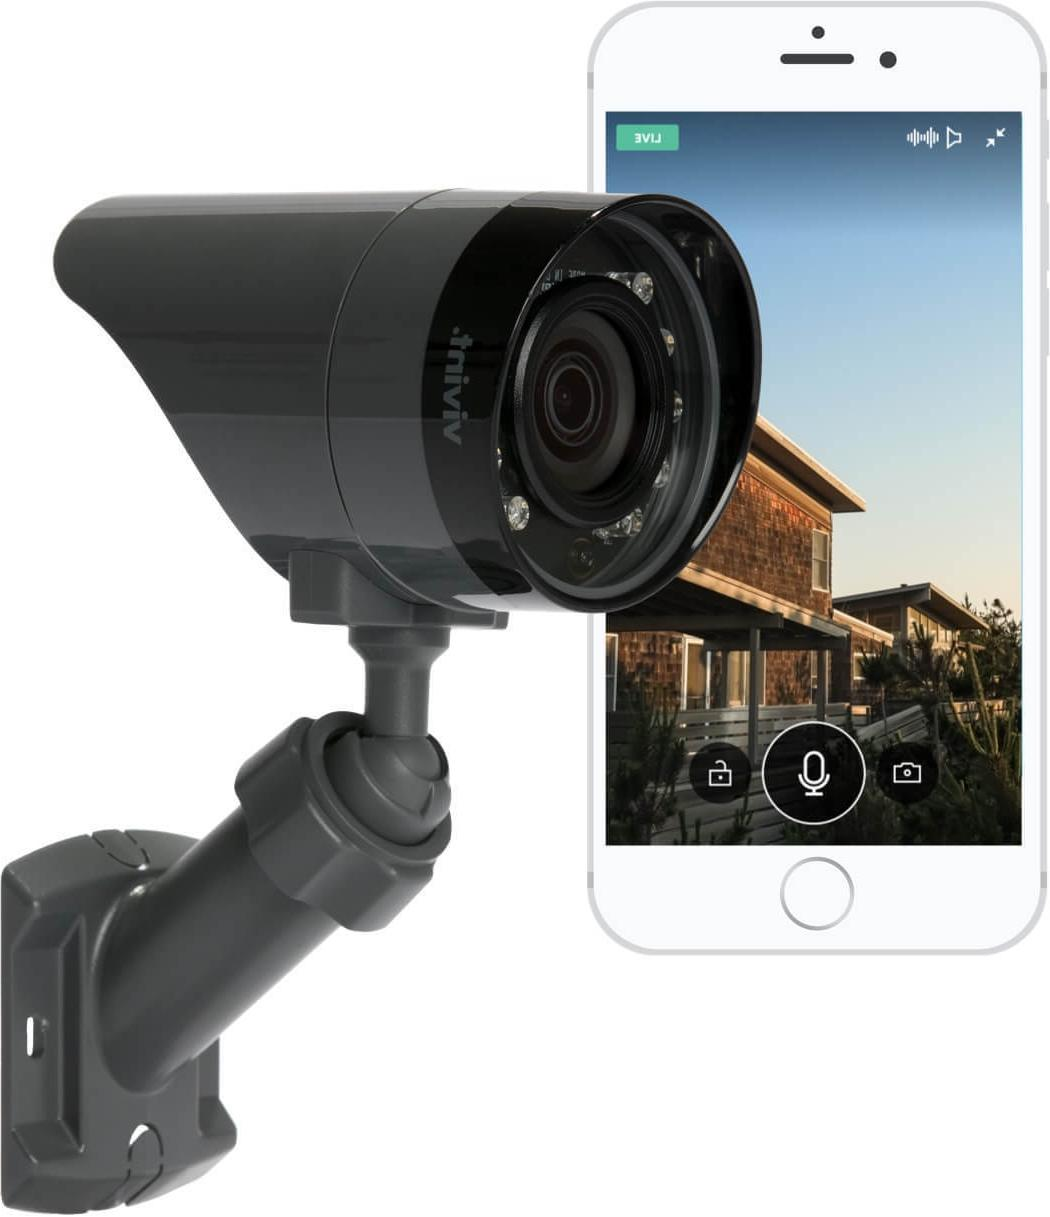 Vivint Outdoor Camera HDP450 for the Vivint Alarm/Smart Home